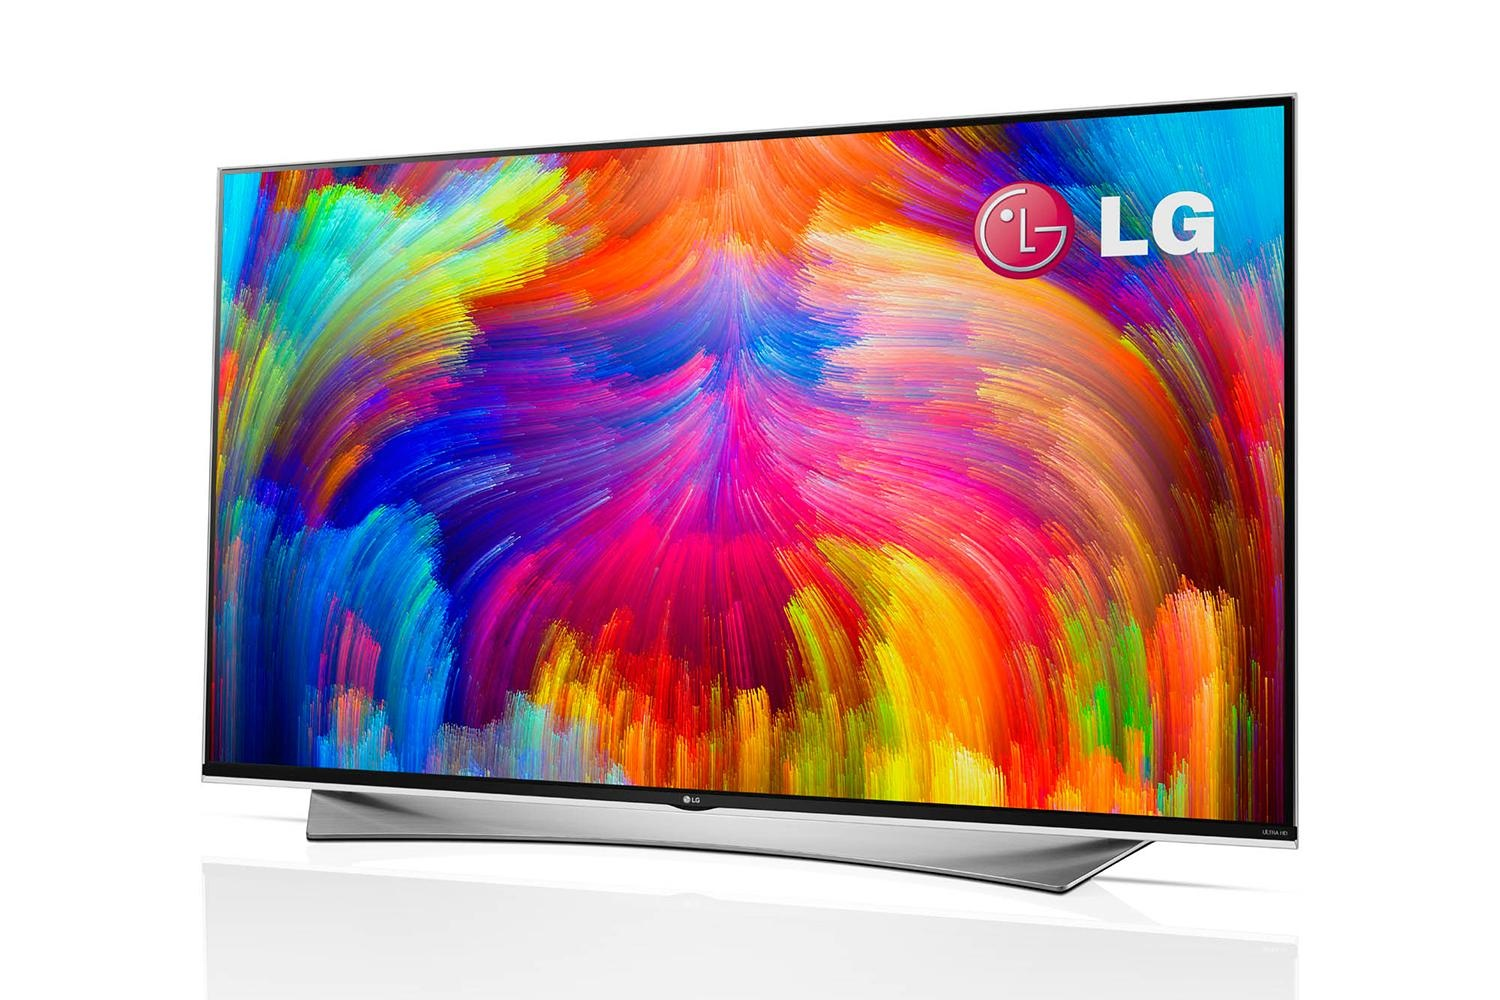 An LG Quantum Dot TV.